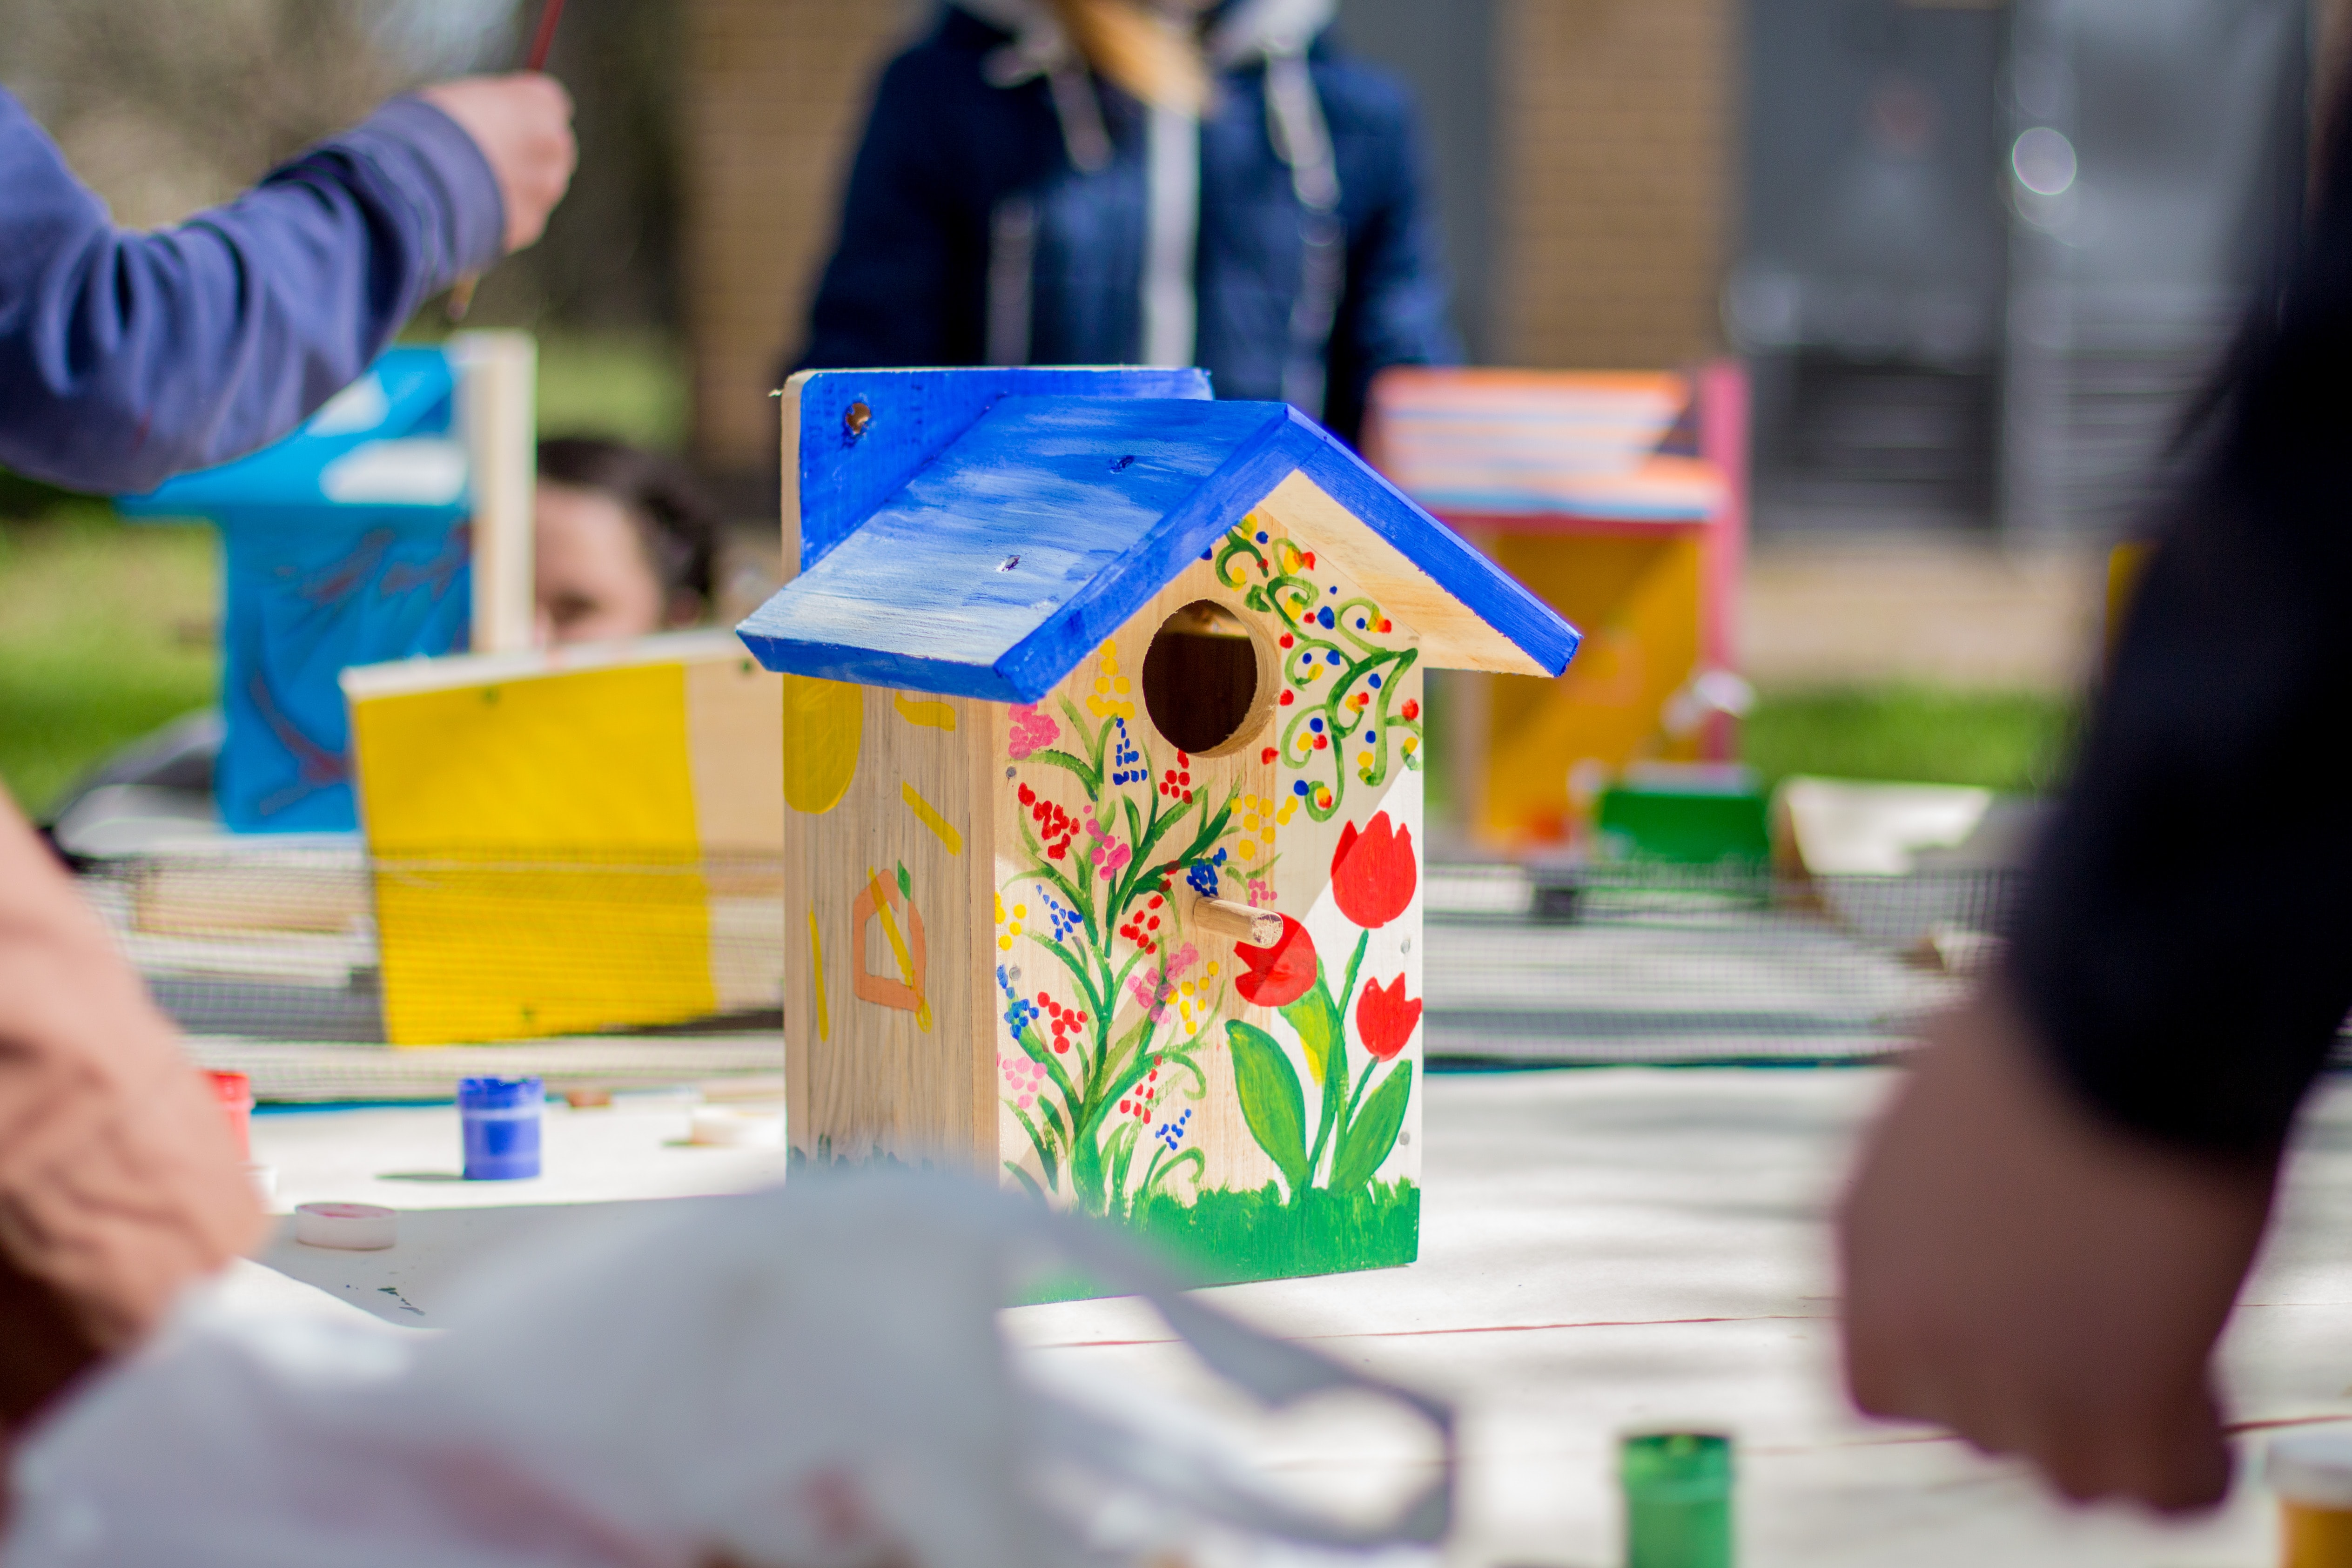 People decorate a birdhouse with paint at a DIY arts and crafts event